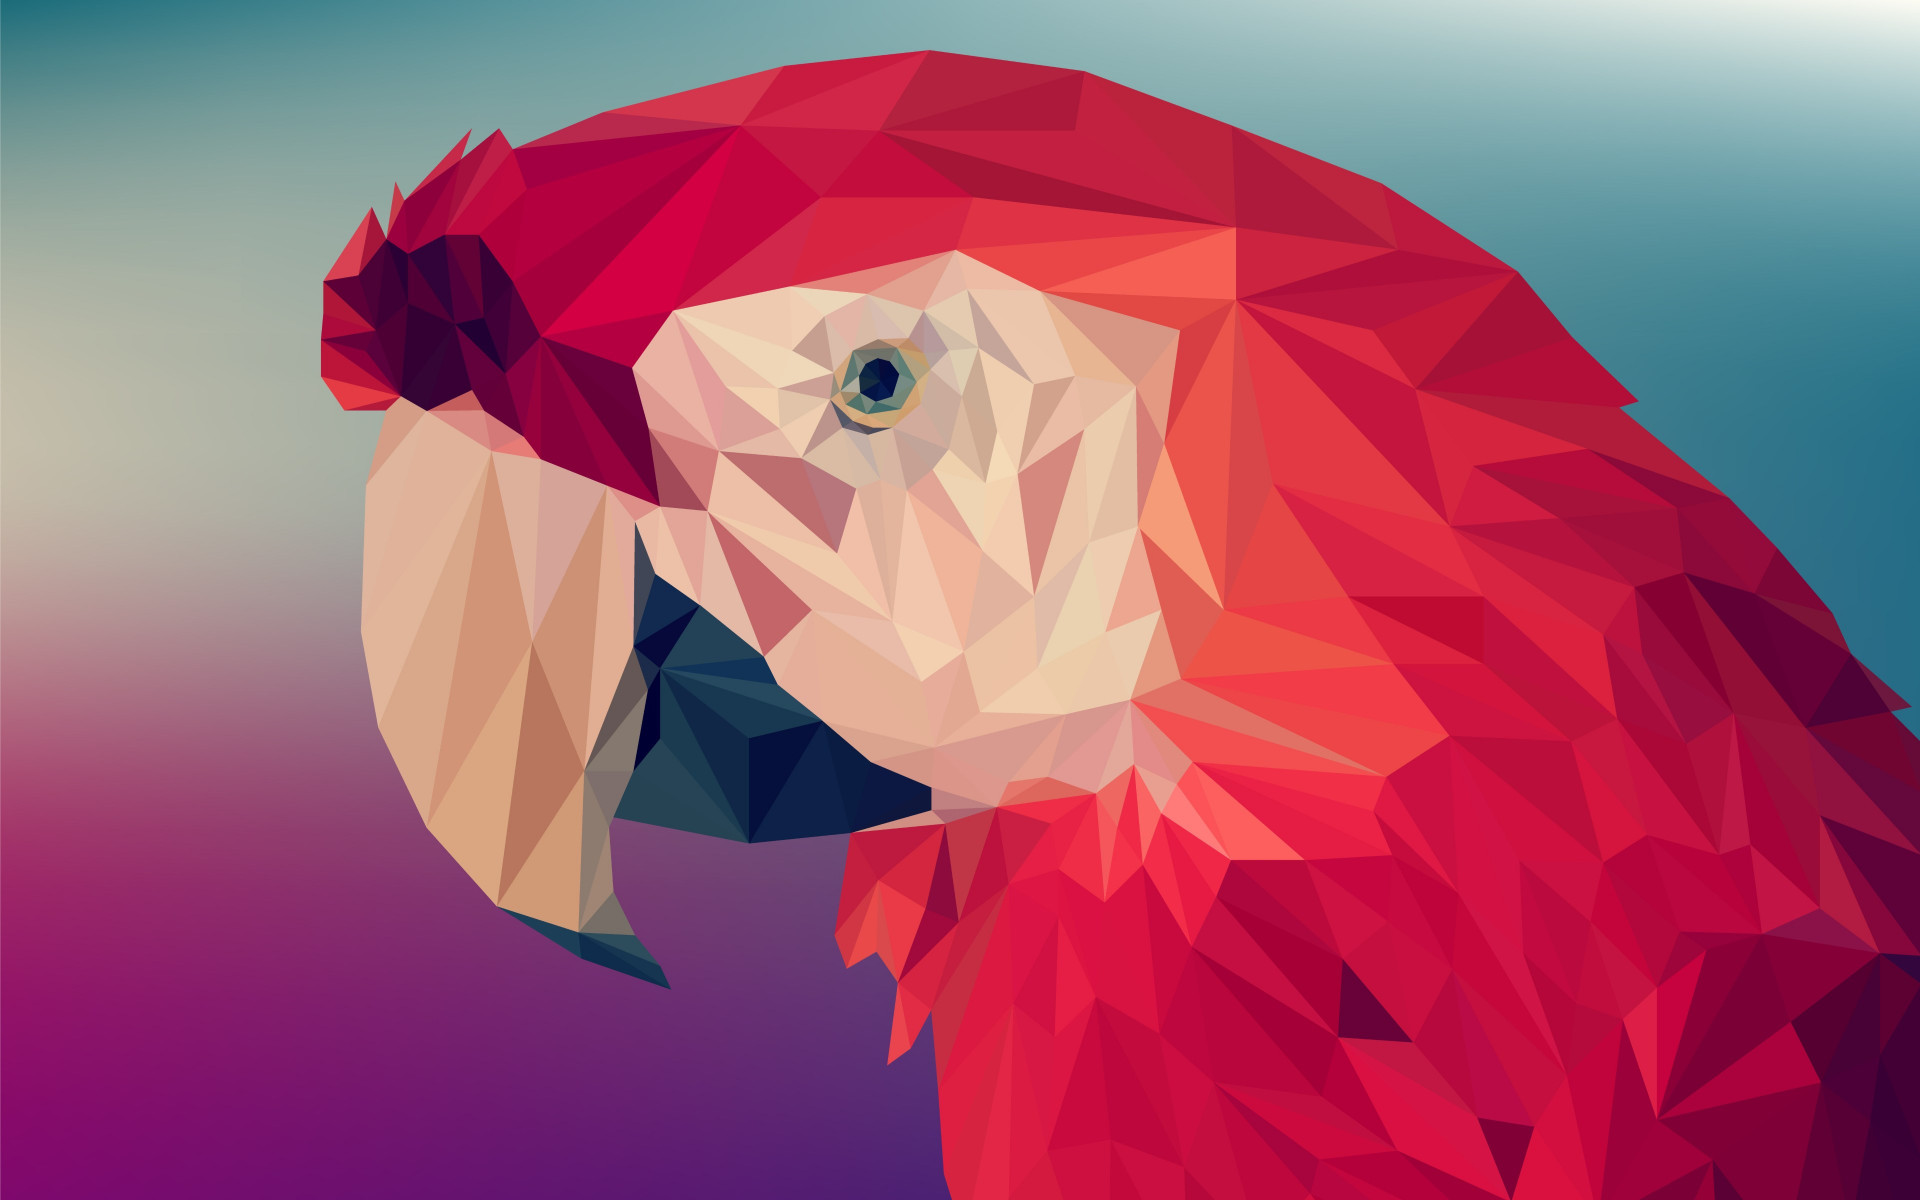 Low poly art: Red parrot wallpaper 1920x1200